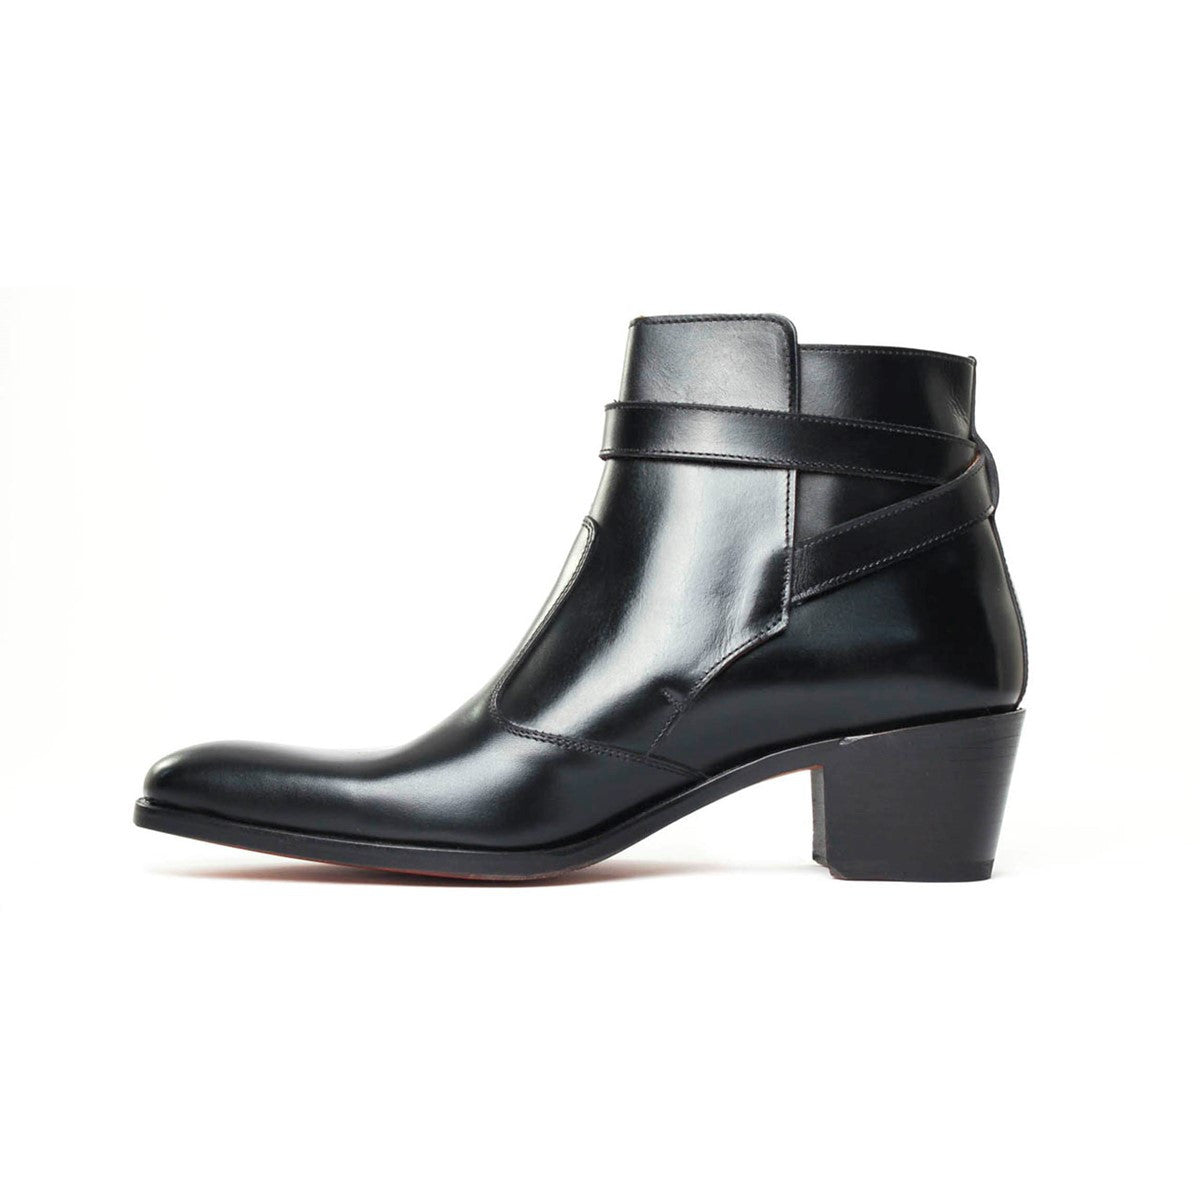 Boots Jodhpur in black calf leather Vincennes 5cm